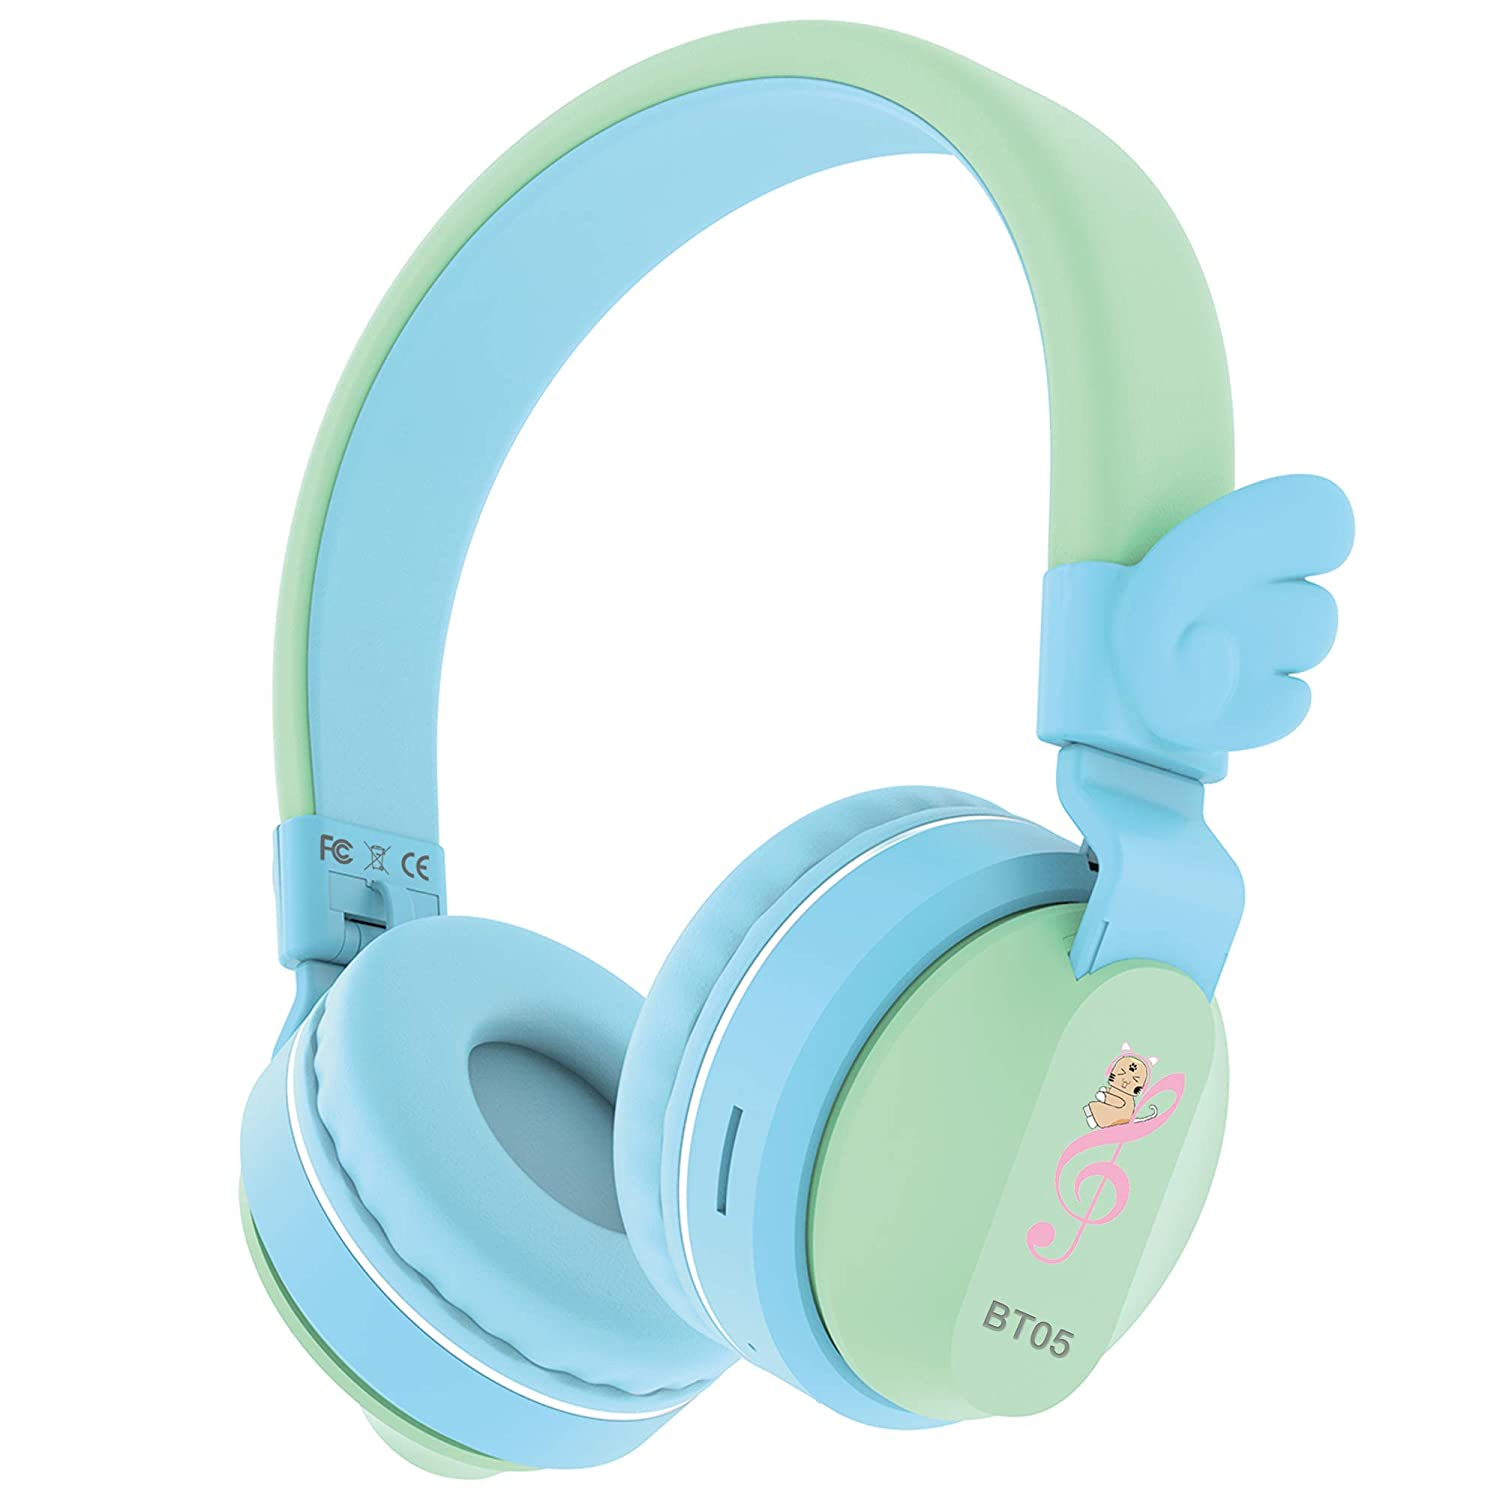 Riwbox BT05 Wings Kids Headphones Wireless Bluetooth Foldable Over Ear Headset with Volume Limited and Mic/TF Card Compatible for iPad/iPhone/Tablet (Green&Blue)